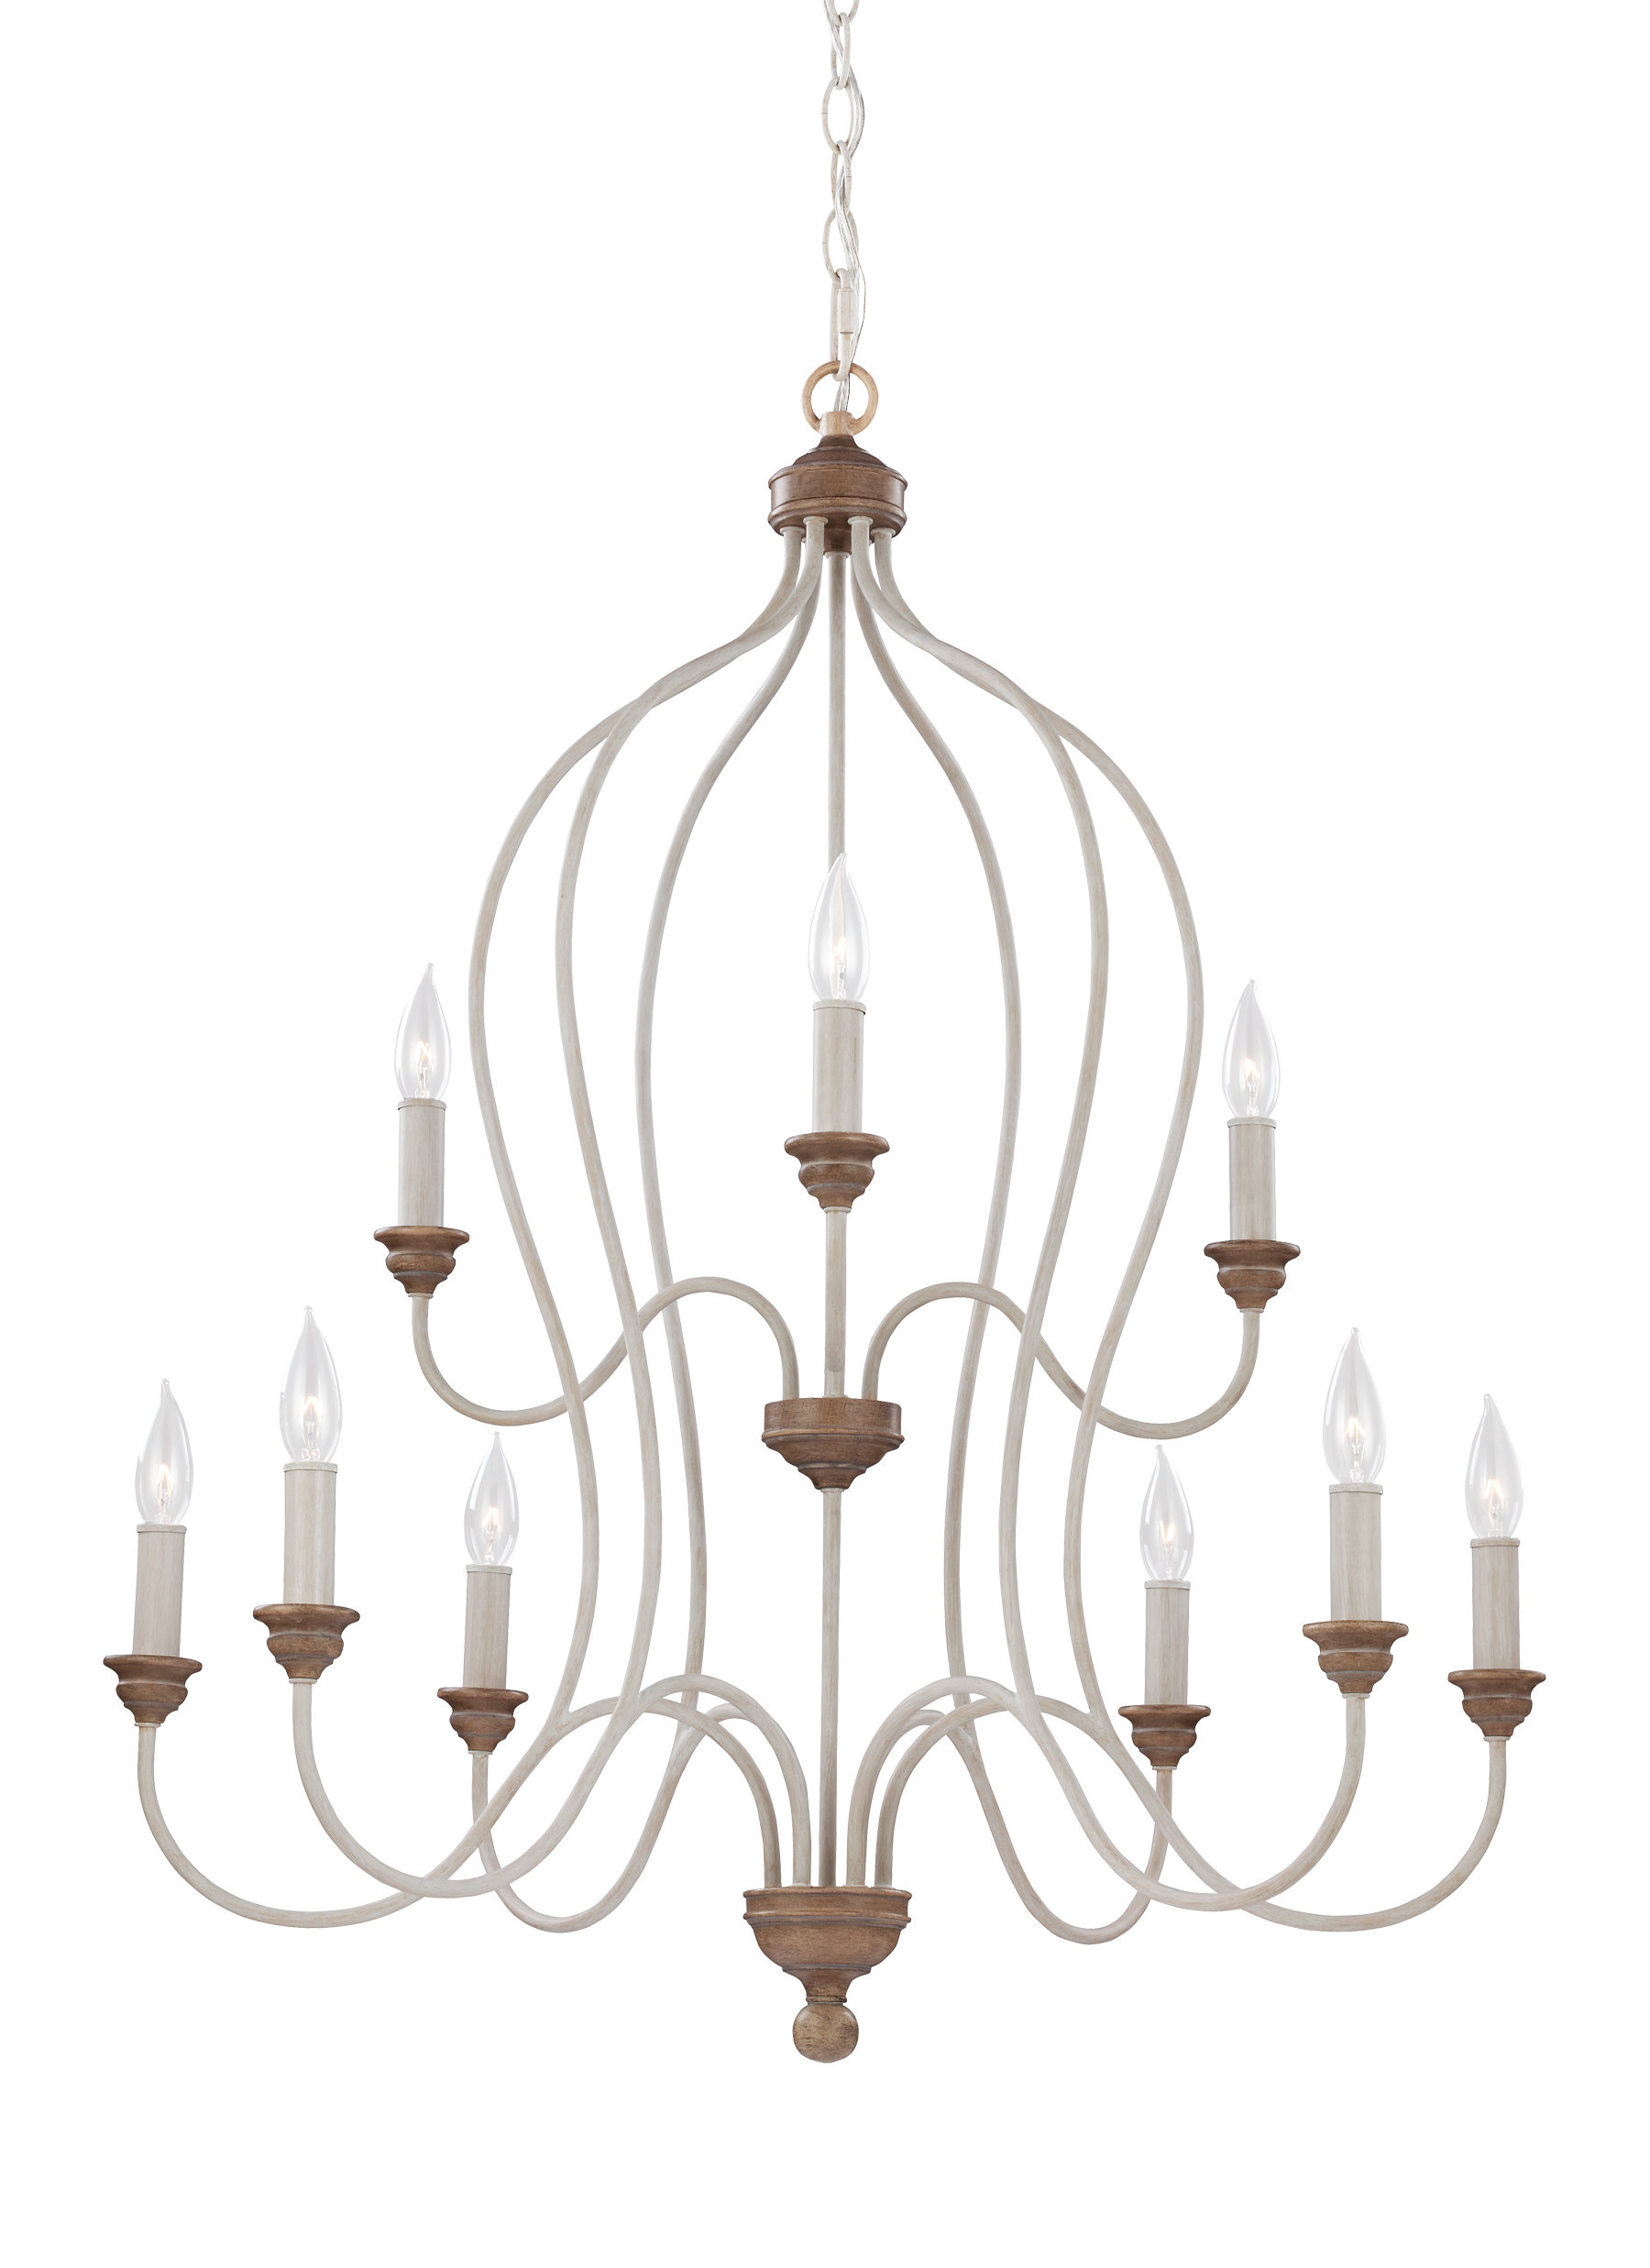 Sundberg 9 Light Candle Style Chandelier In Popular Watford 9 Light Candle Style Chandeliers (Gallery 10 of 20)